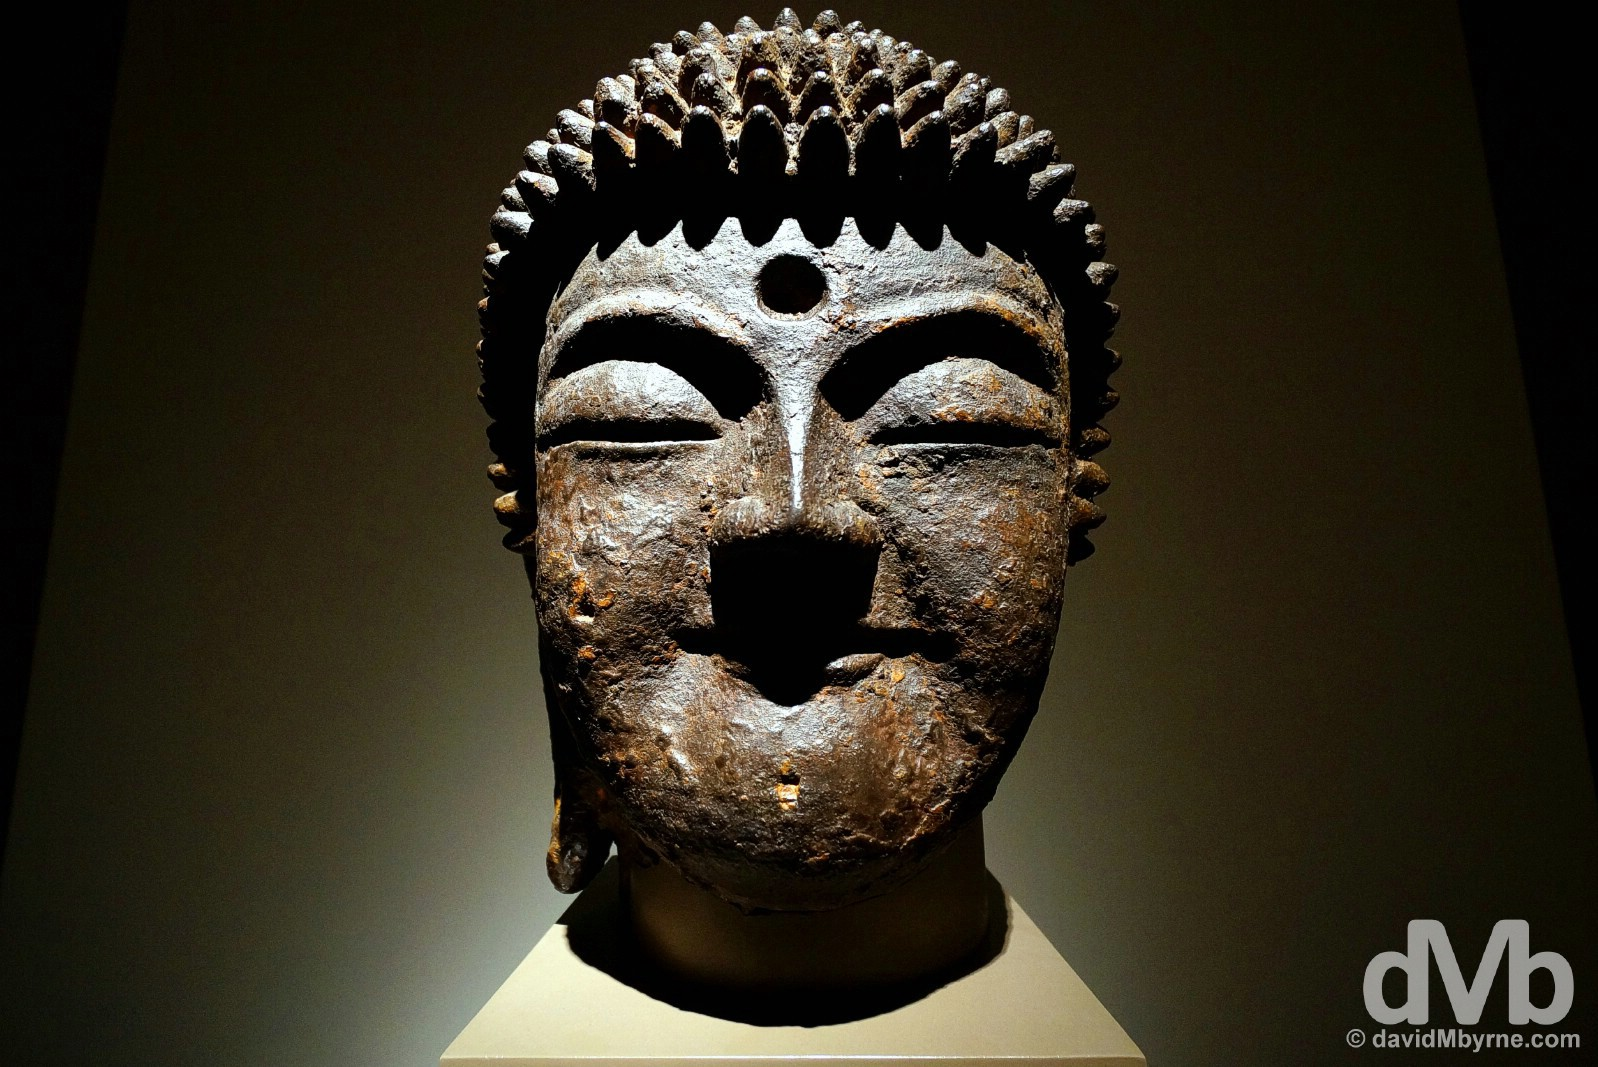 A Bodhisattva on display in the National Museum of Korea, Seoul, South Korea. January 25, 2015.